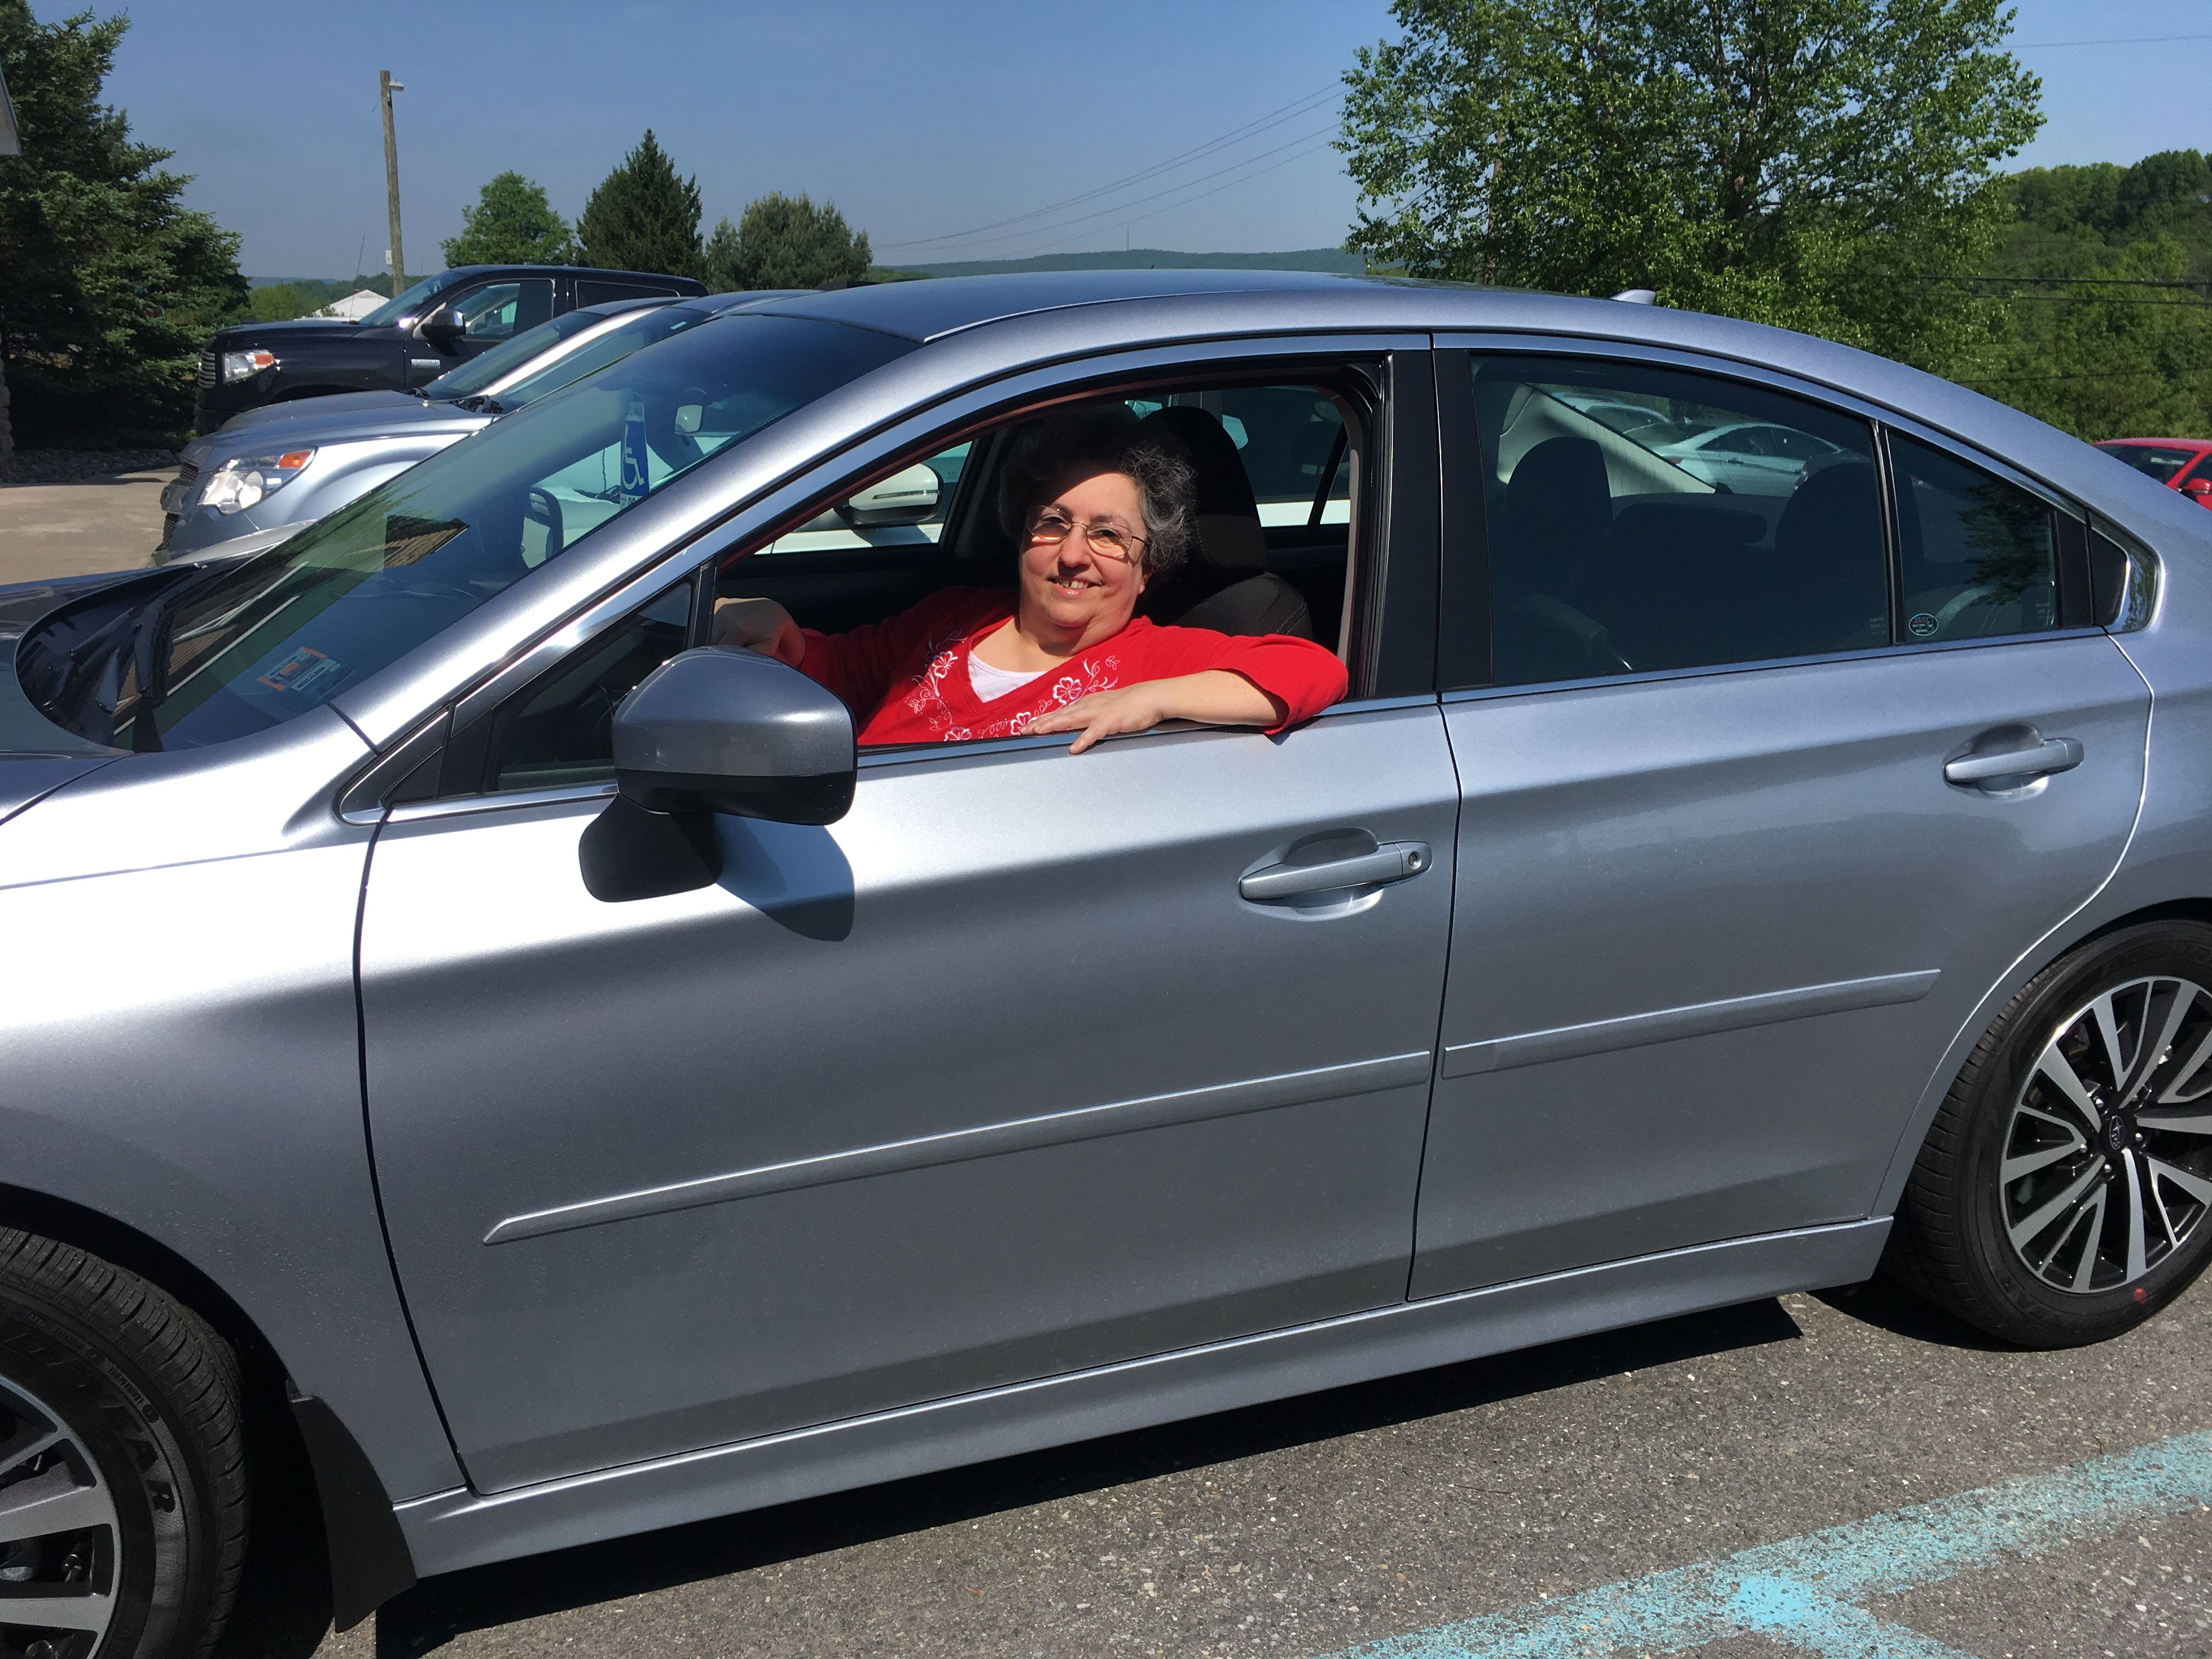 Woman returning to driving after recovering from her hand injury.